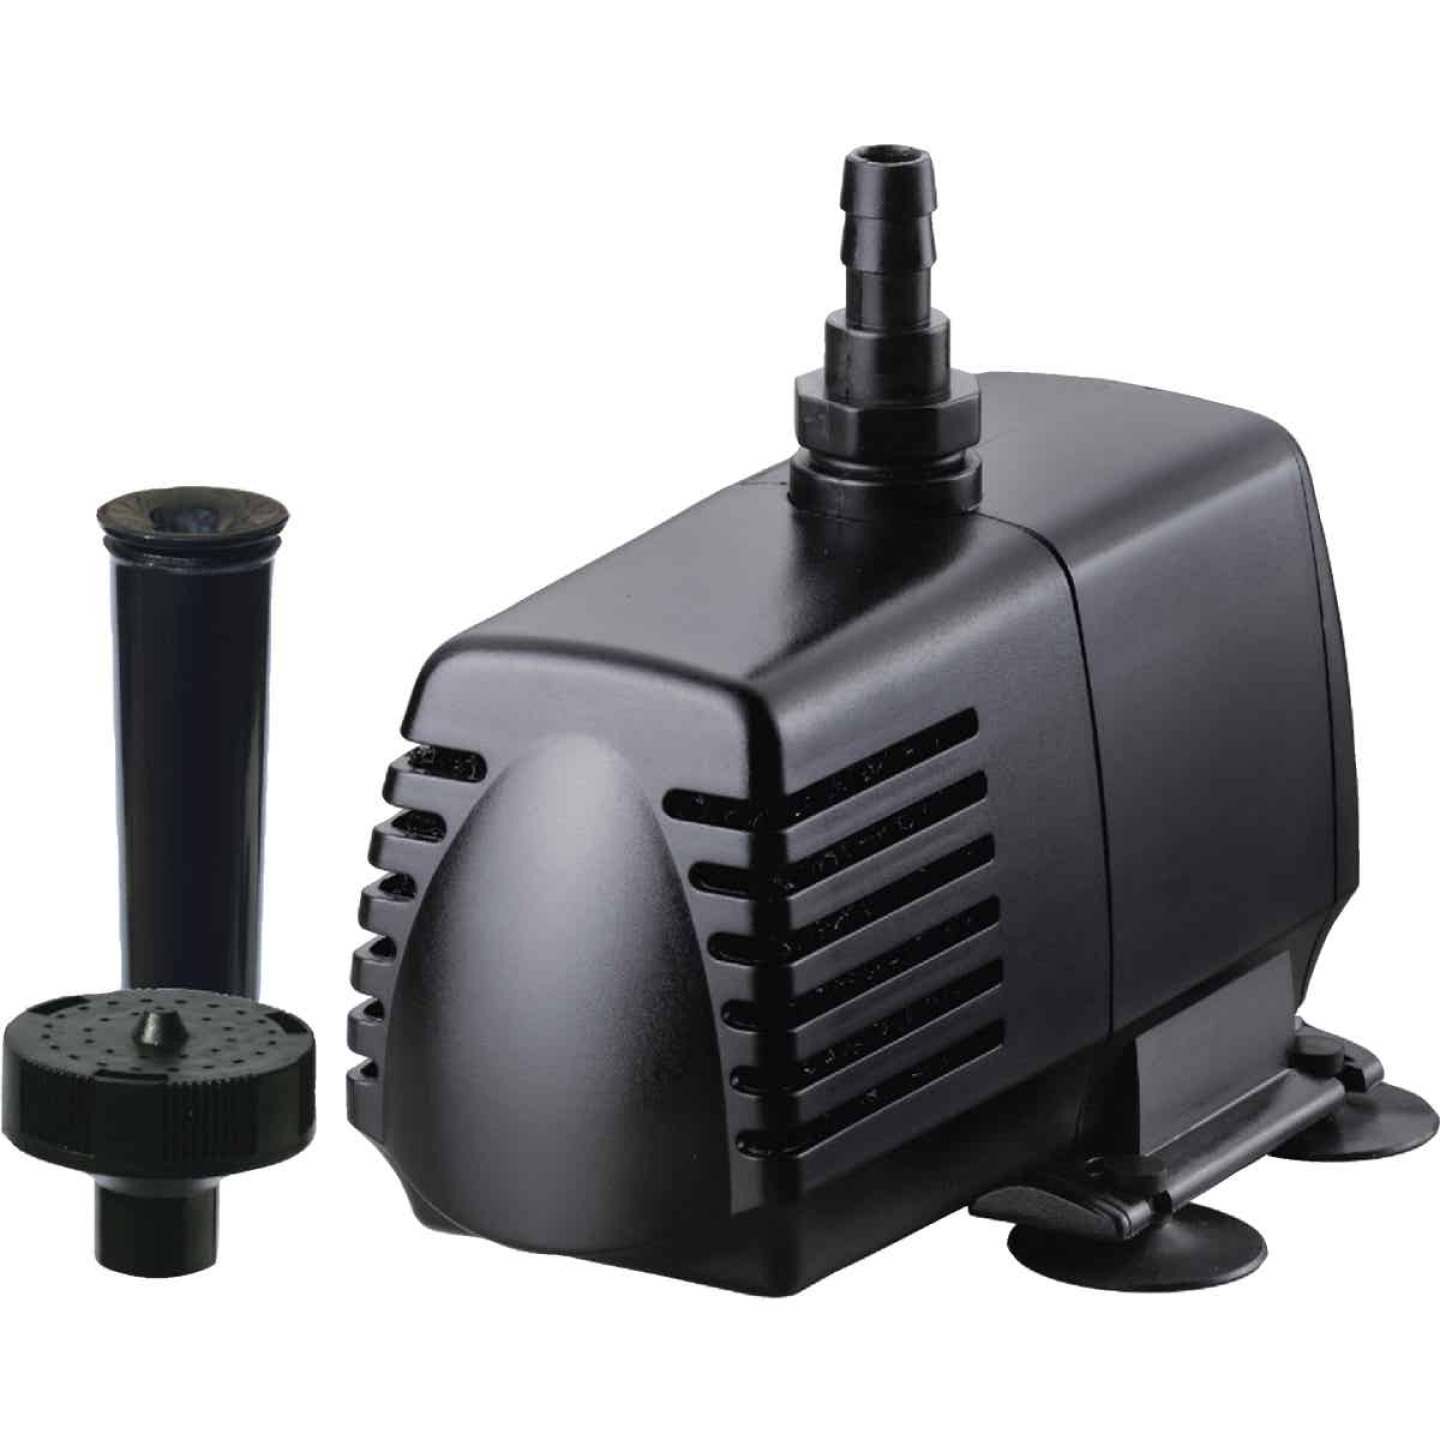 PondMaster Eco 400 GPH 3/4 In. Pond Pump & Fountain Head Kit Image 1